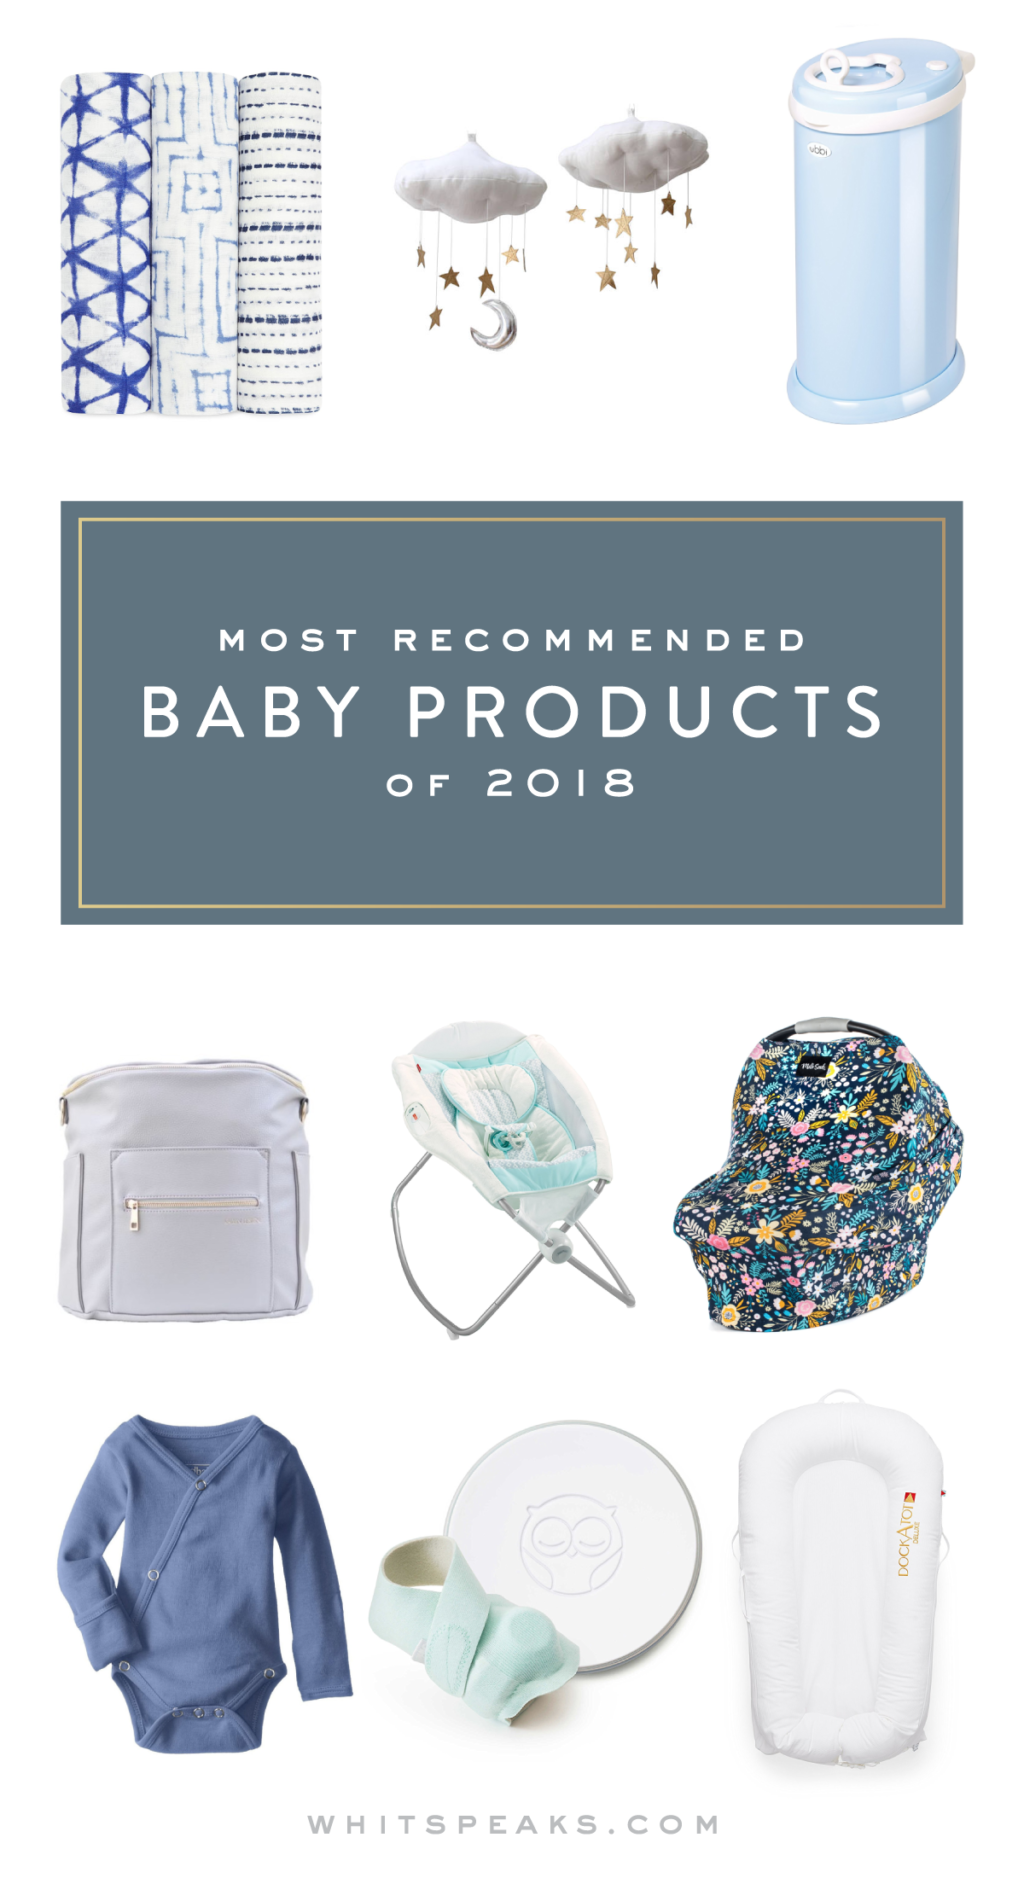 Best Baby Products of 2018